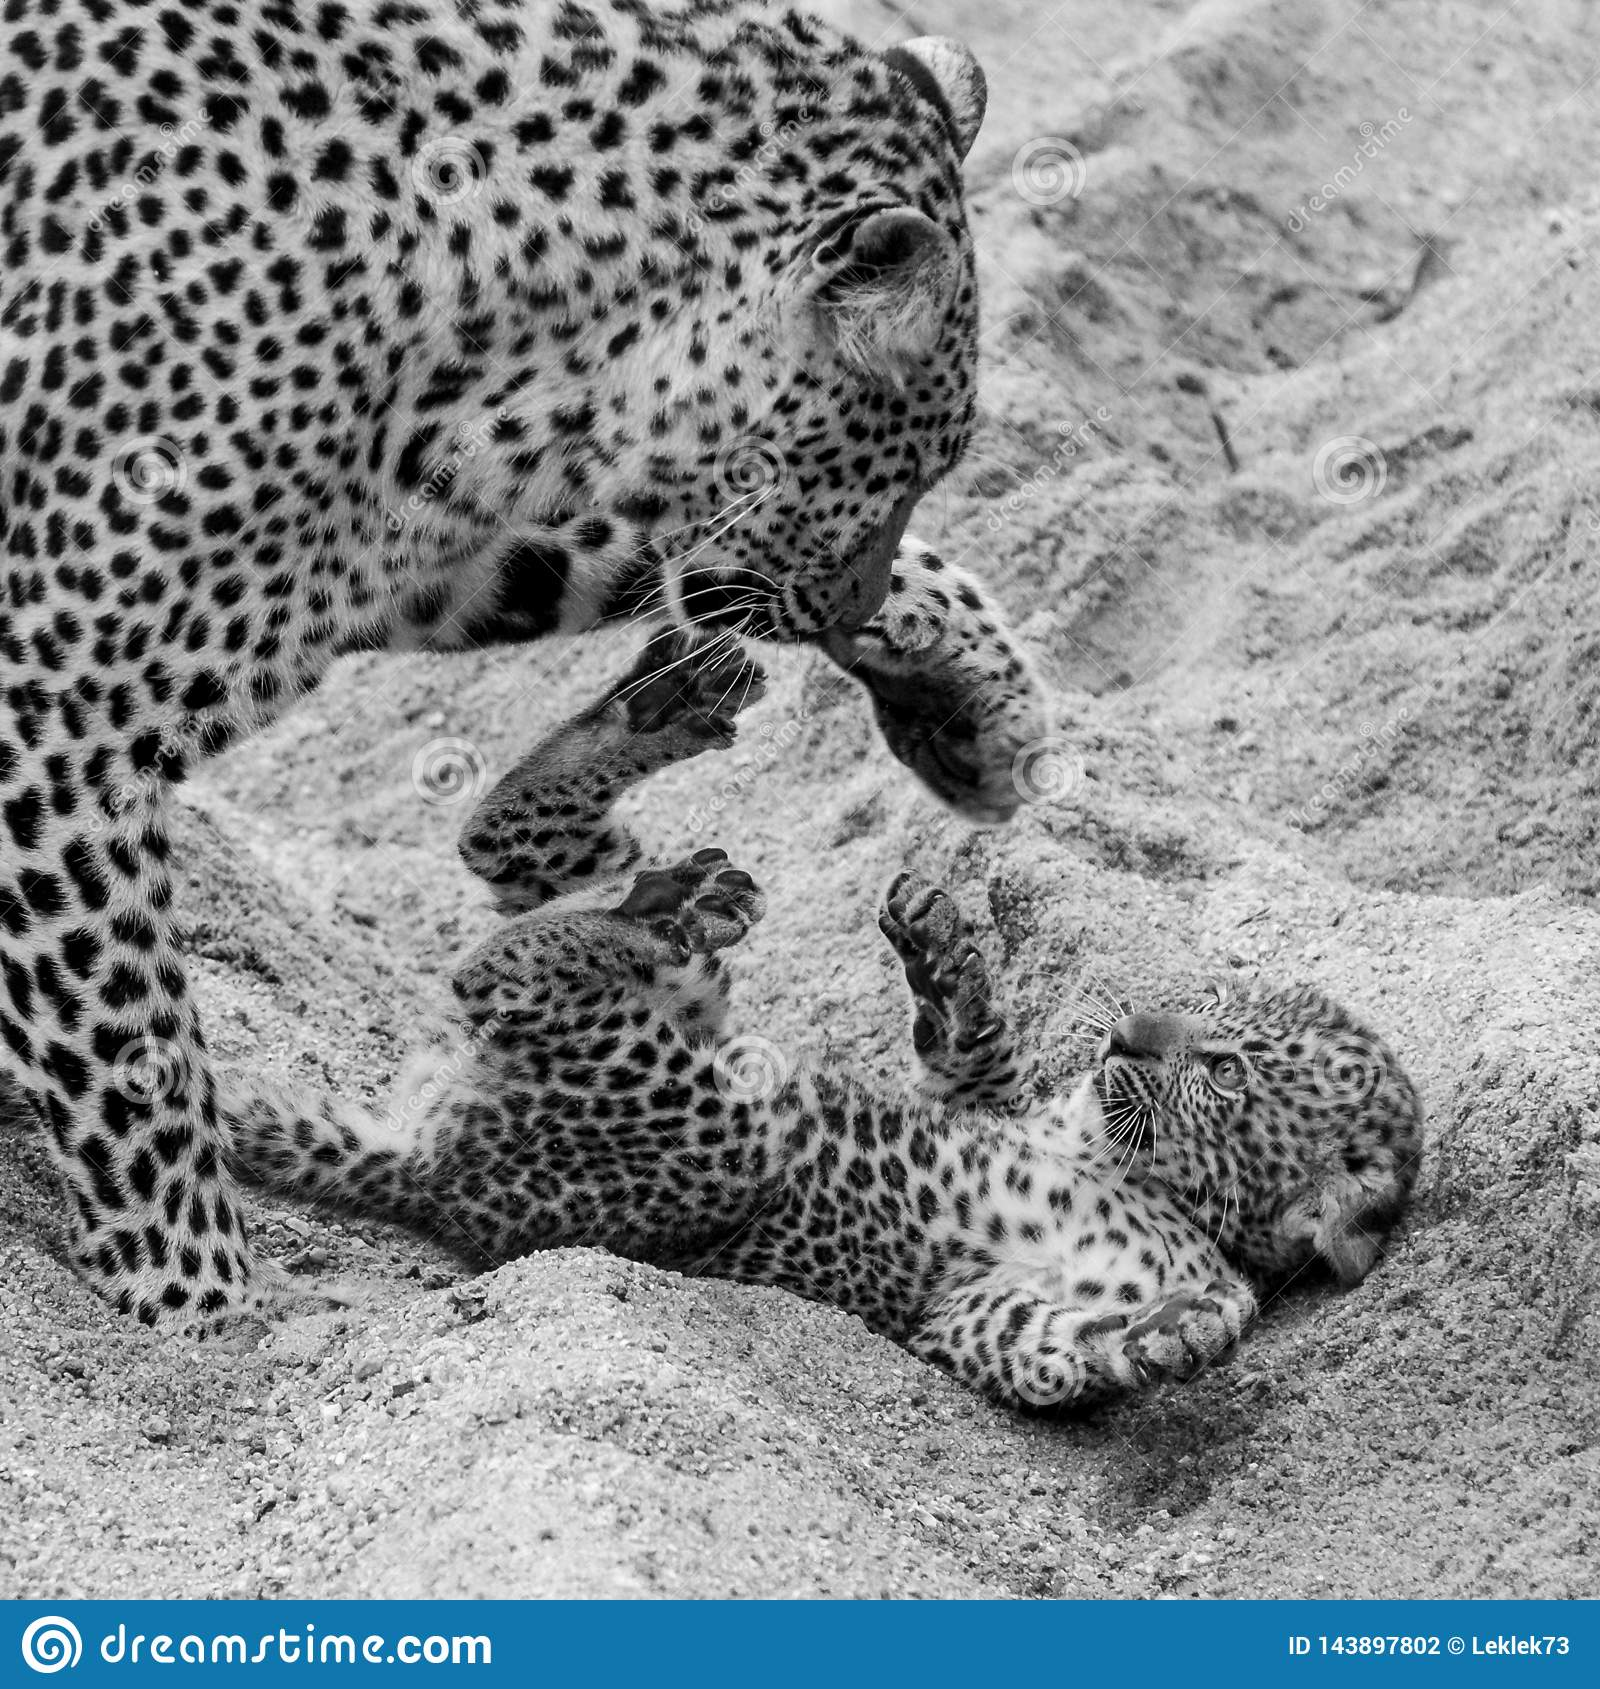 Adult female leopard and cub playing in the sand at Sabi Sands safari park, Kruger, South Africa